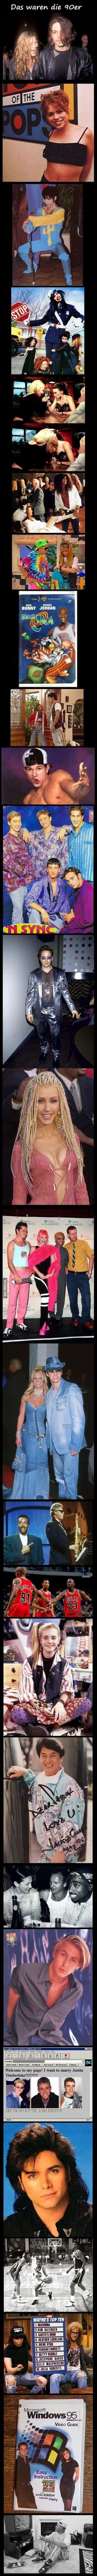 Oh man the 90s were awesome! look at those outfits!